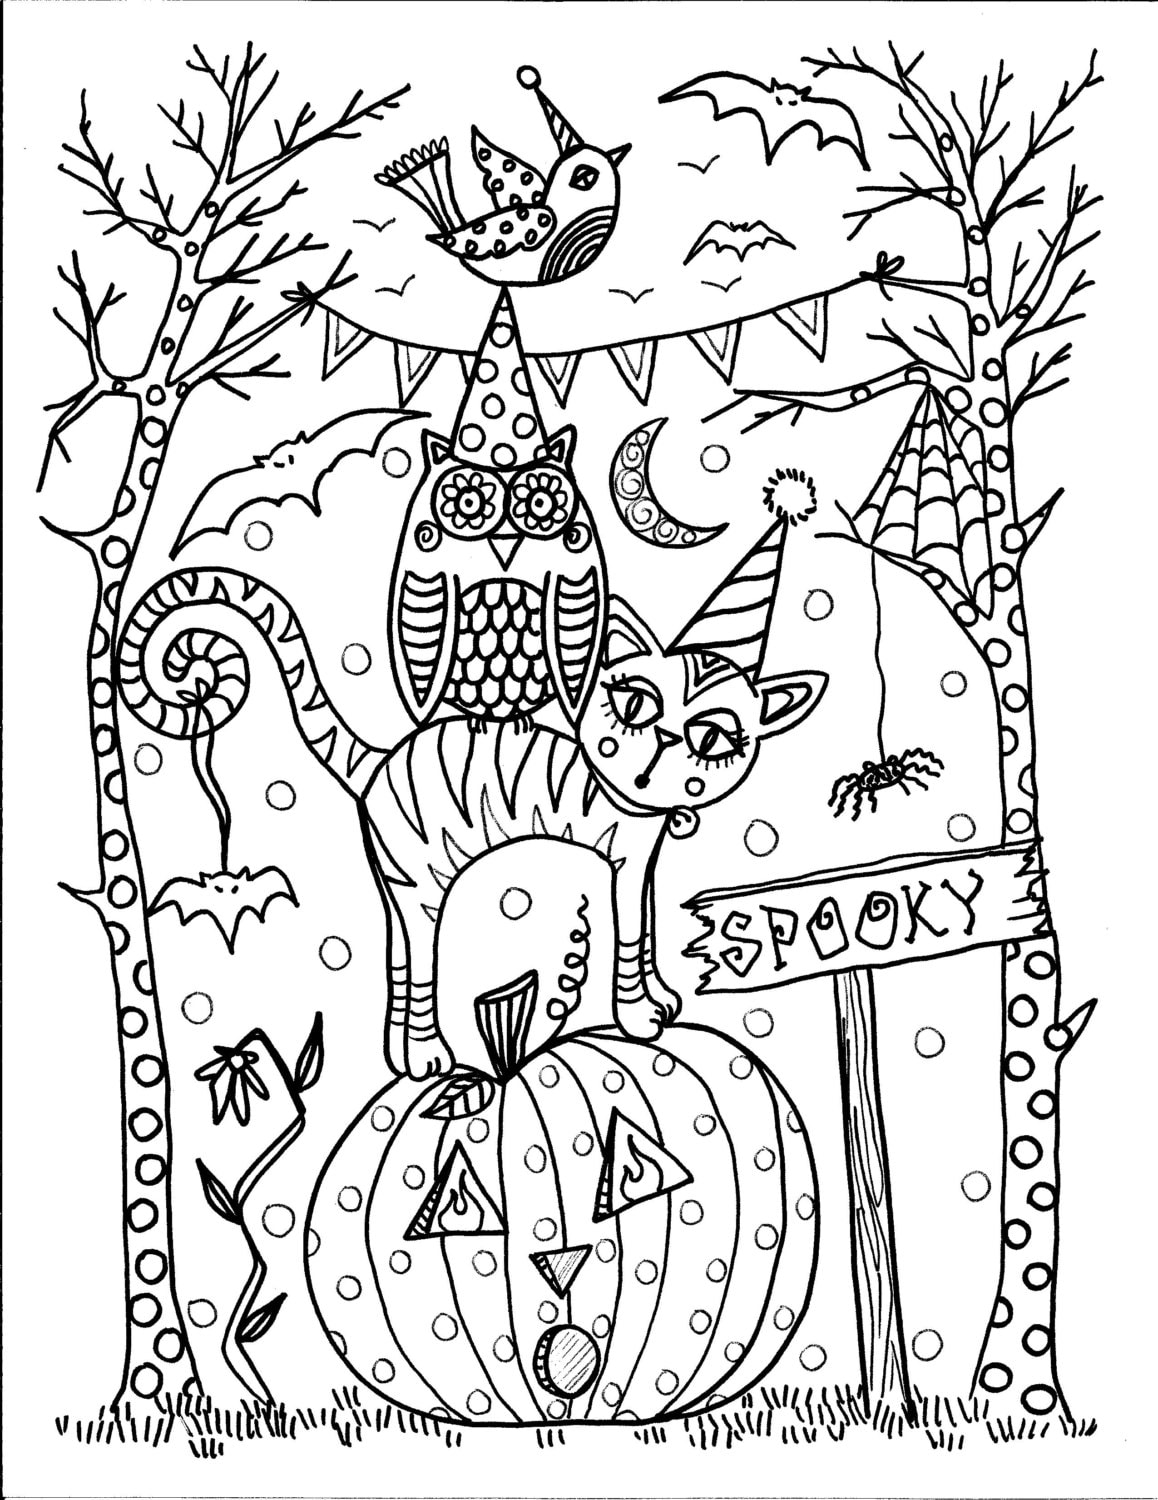 printable coloring pages halloween | 5 pages Instant Download Halloween Coloring pages 5 ...